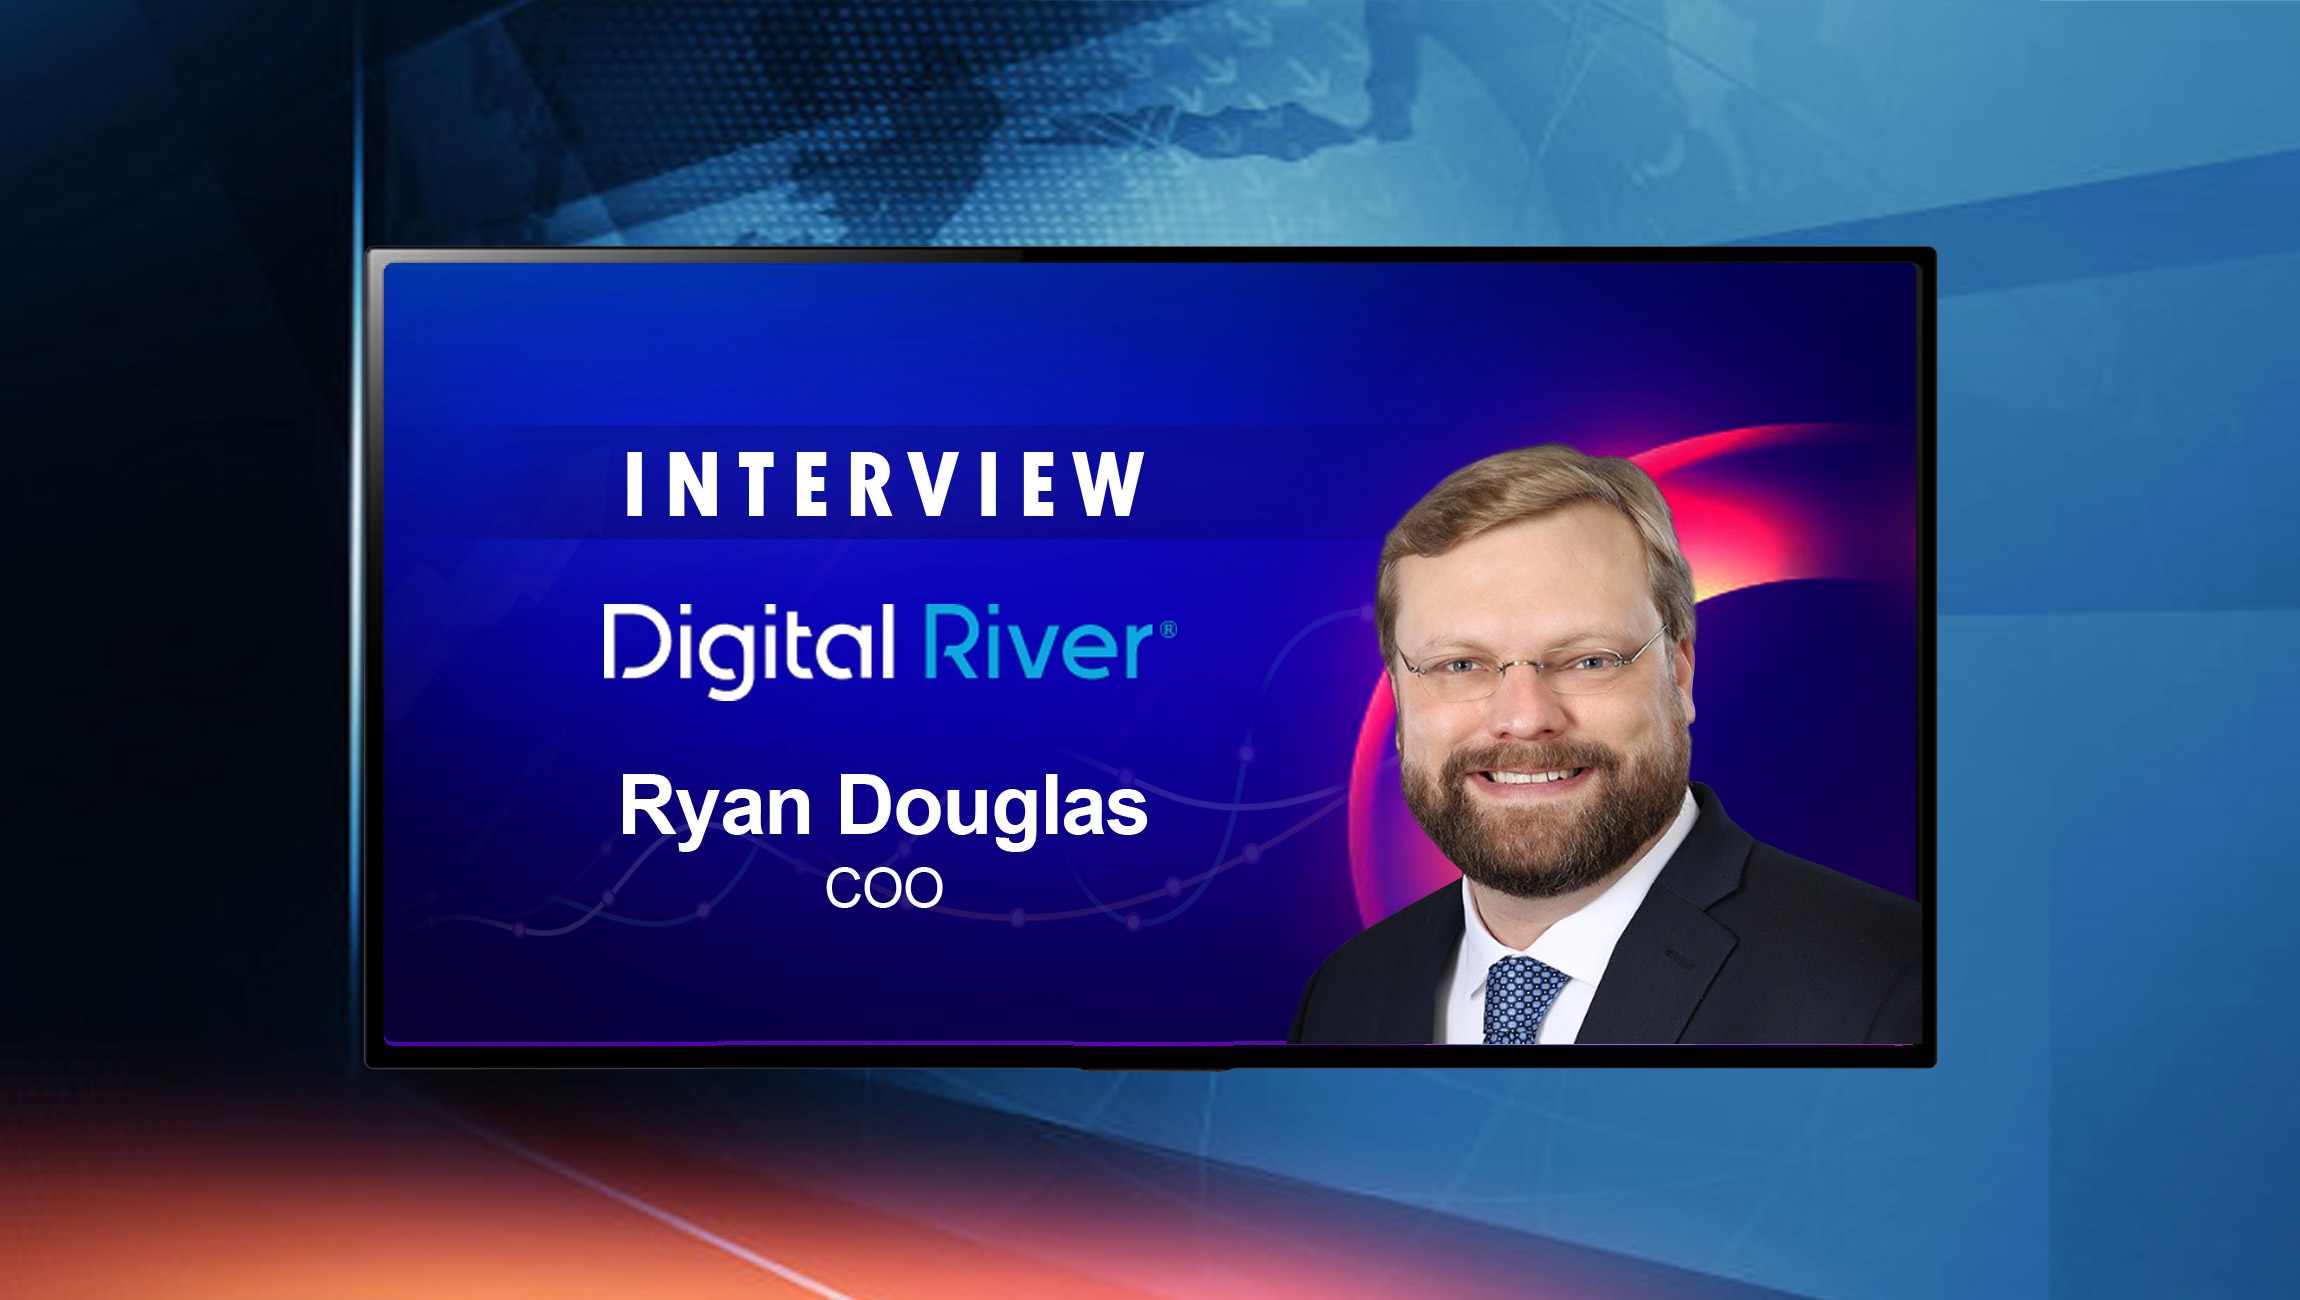 SalesTechStar Interview with Ryan Douglas, COO at Digital River